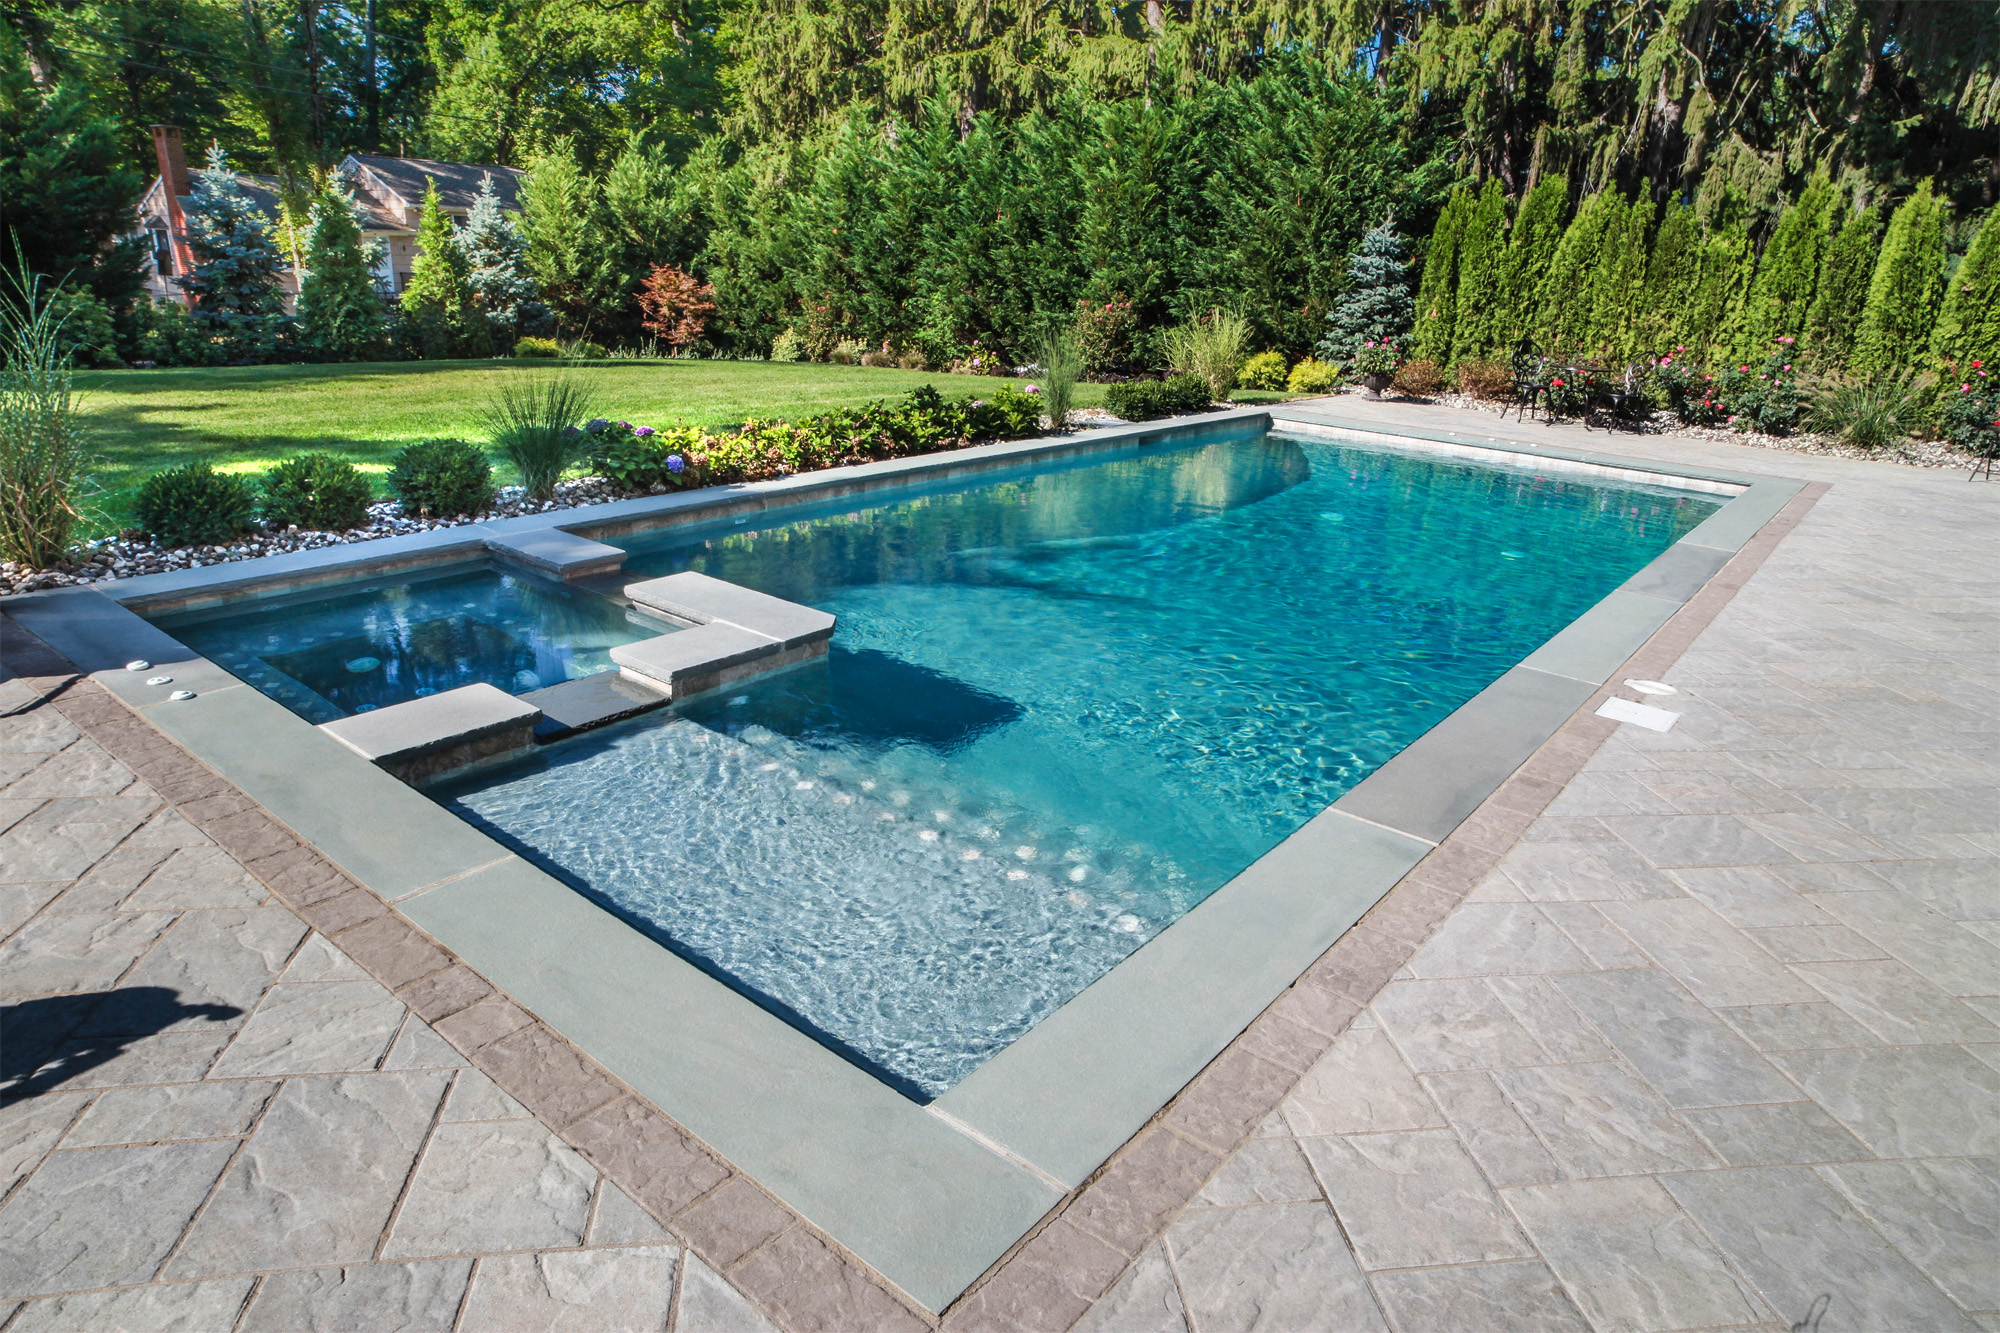 Emejing rectangular swimming pool designs photos Swimming pool styles designs